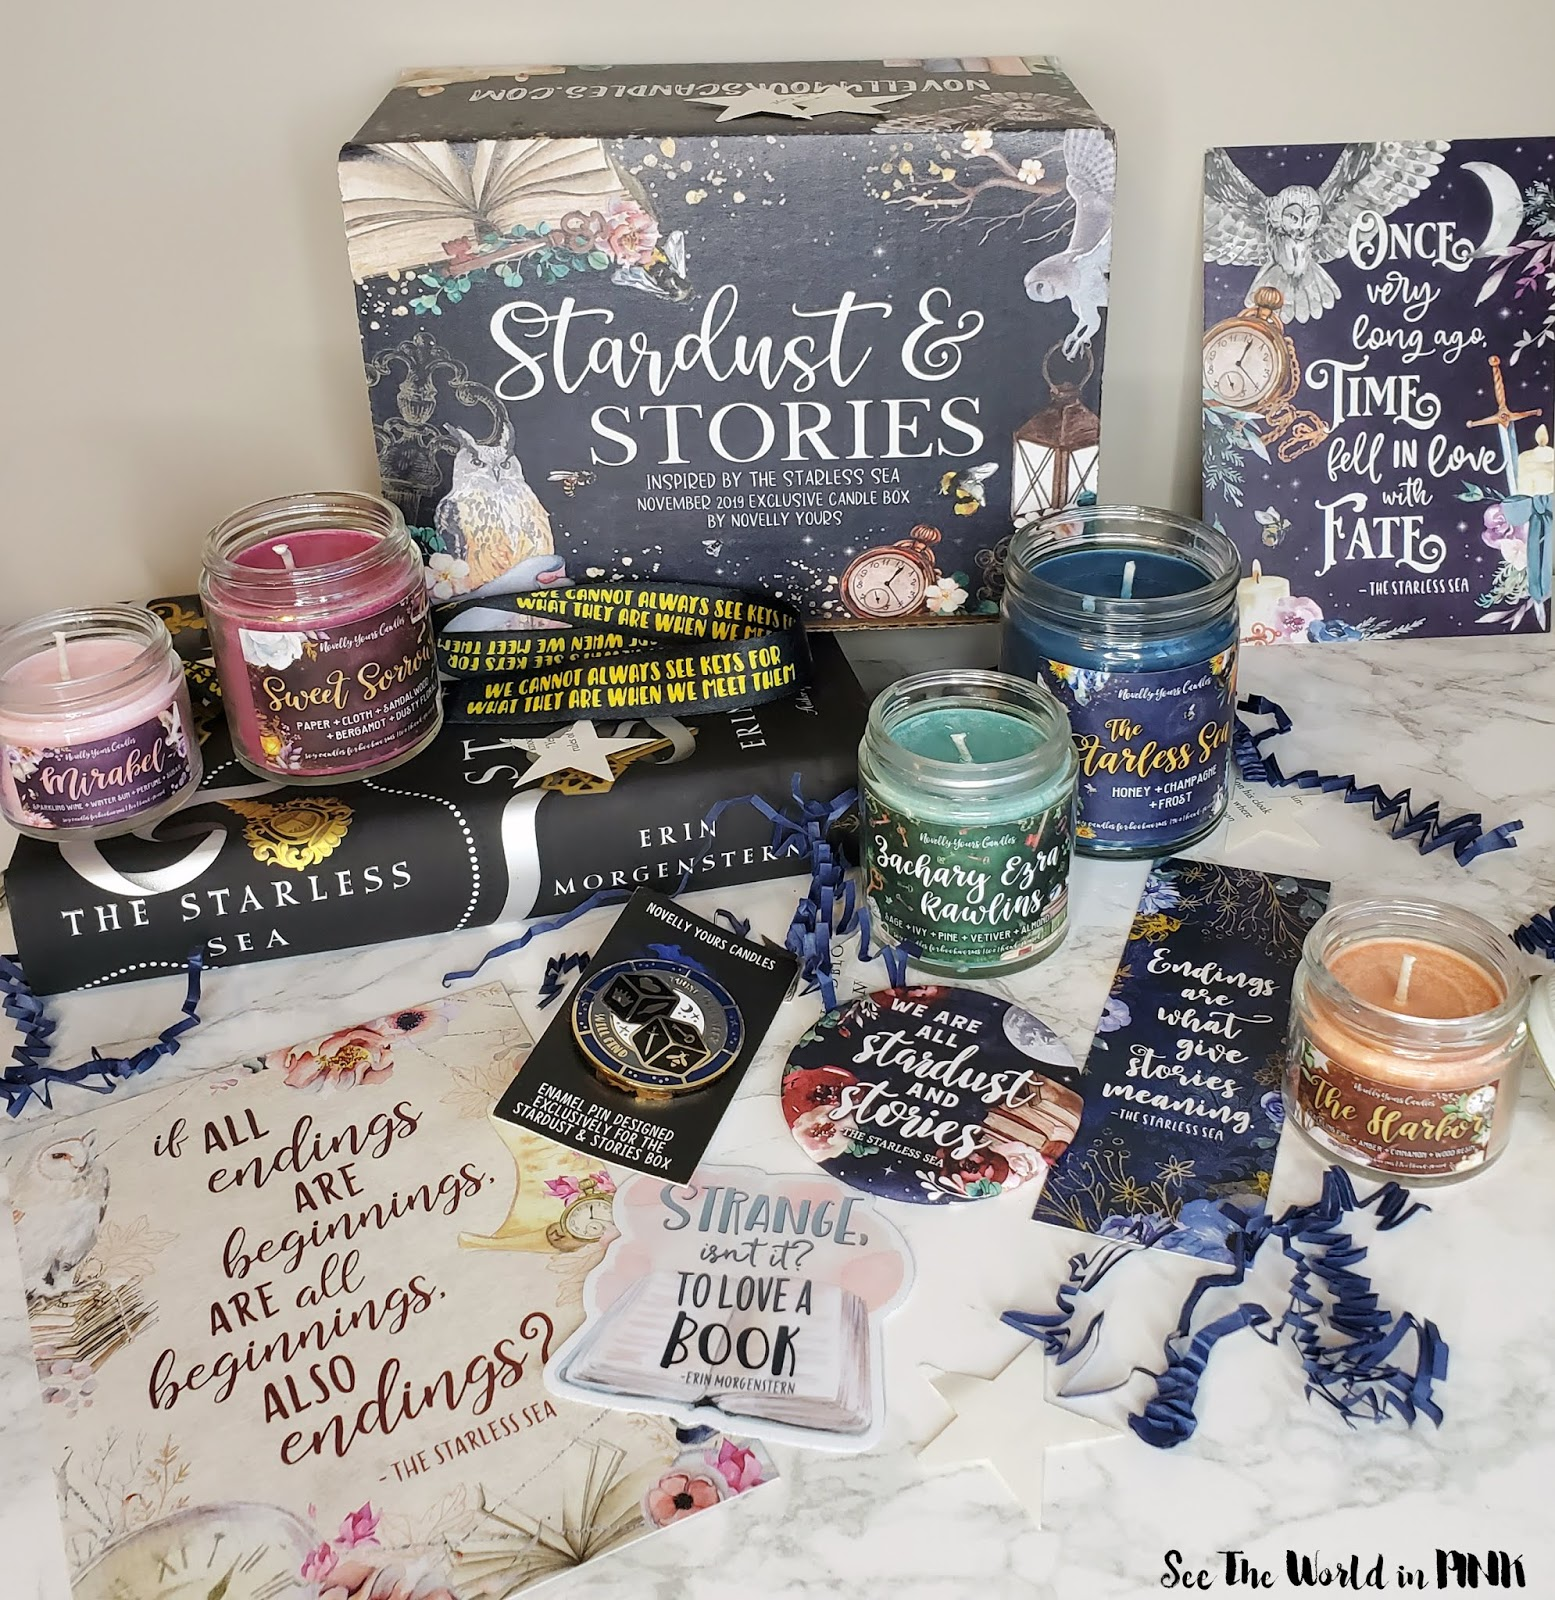 Novelly Yours Exclusive Candle Box November 2019 Stardust & Stories